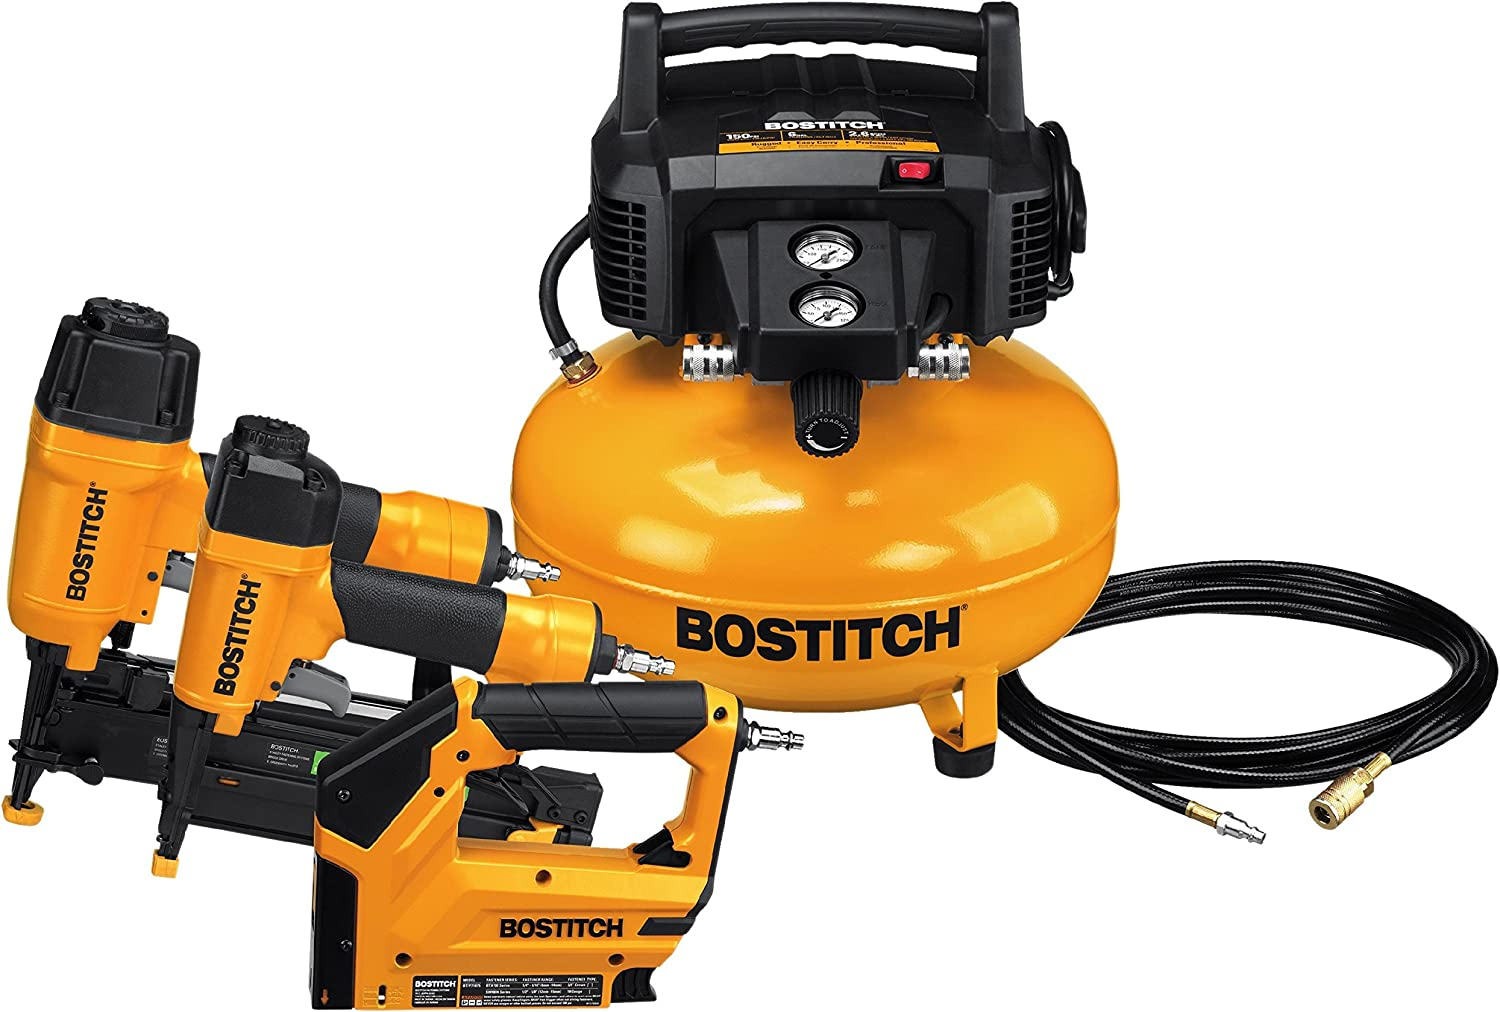 BOSTITCH BTFP3KIT Air Compressor Combo Kit